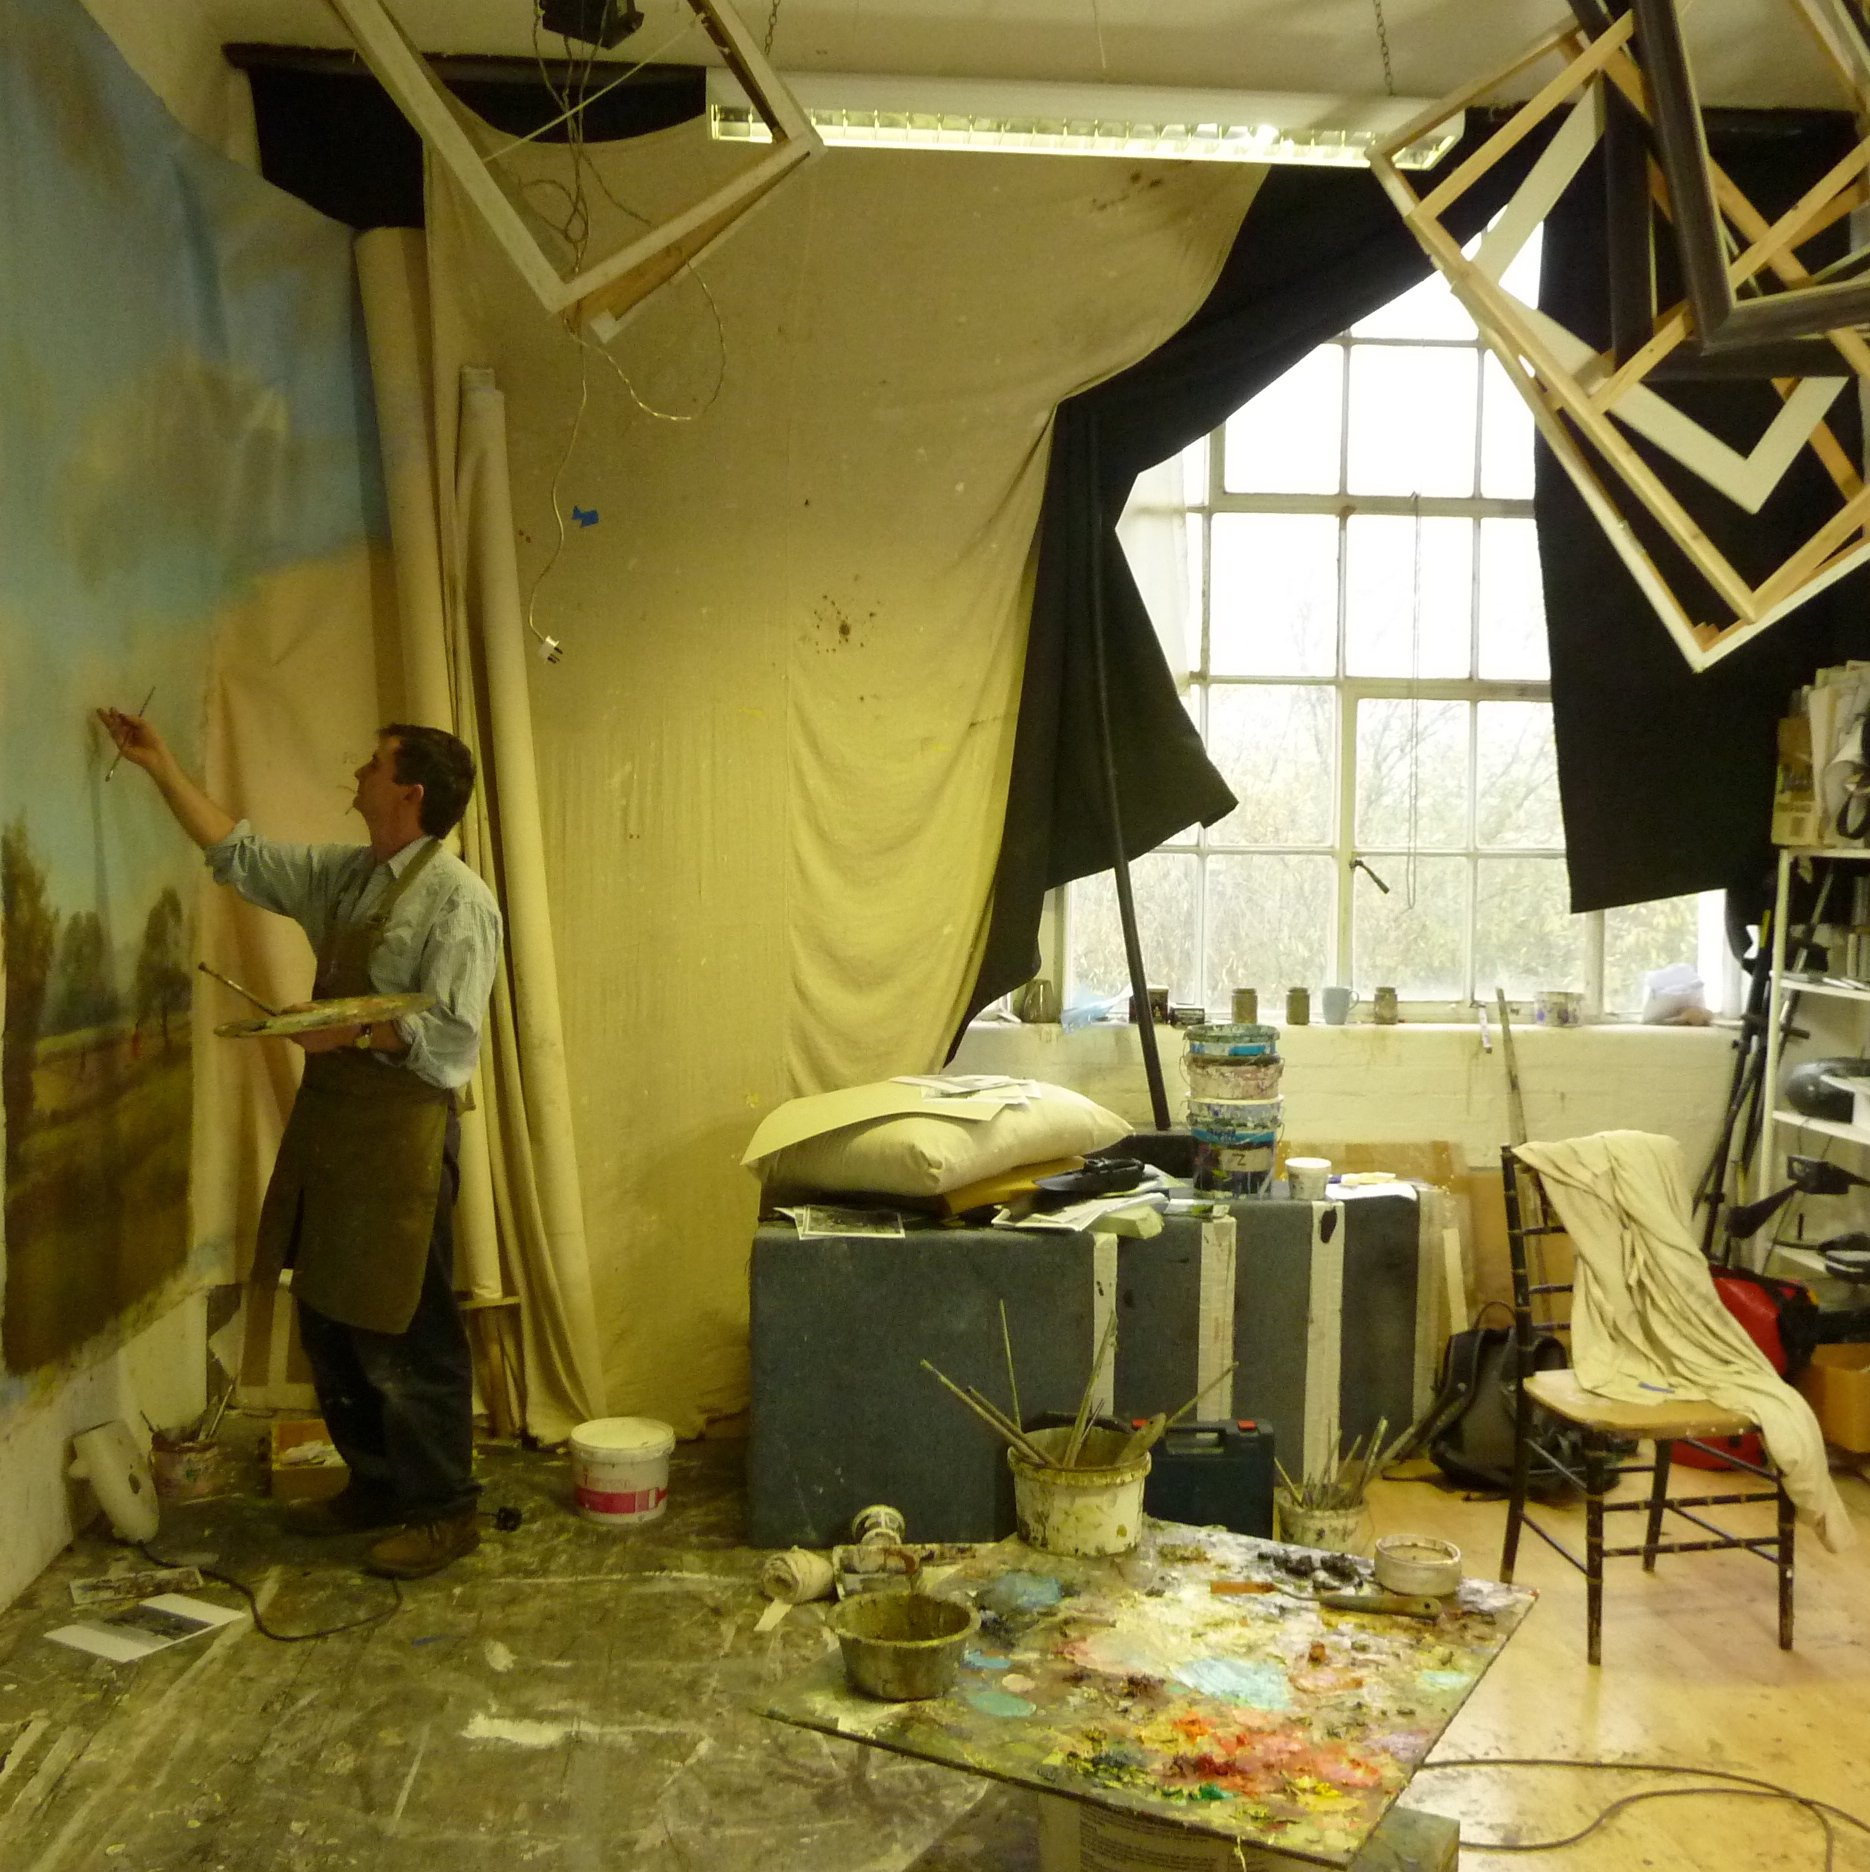 Michael Alford painting a mural in his studio